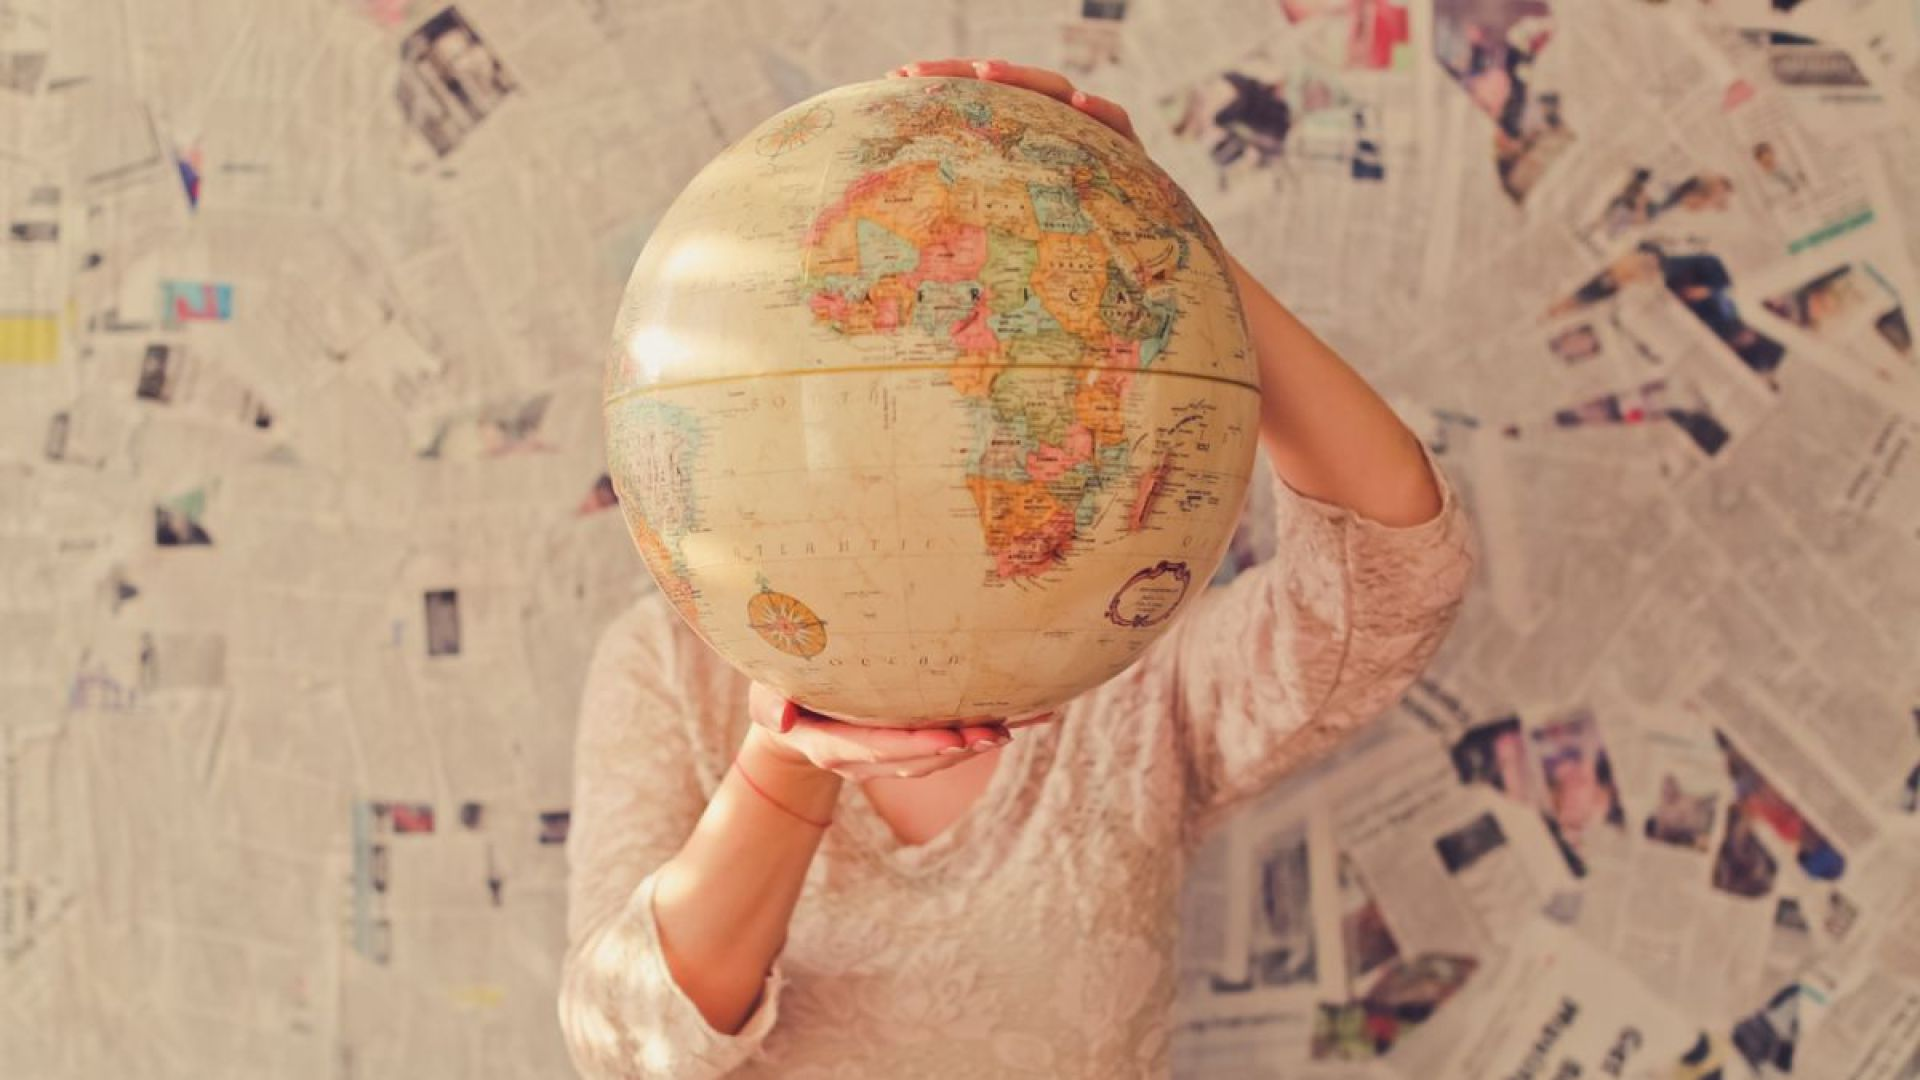 7 steps to successfully running a global creative team